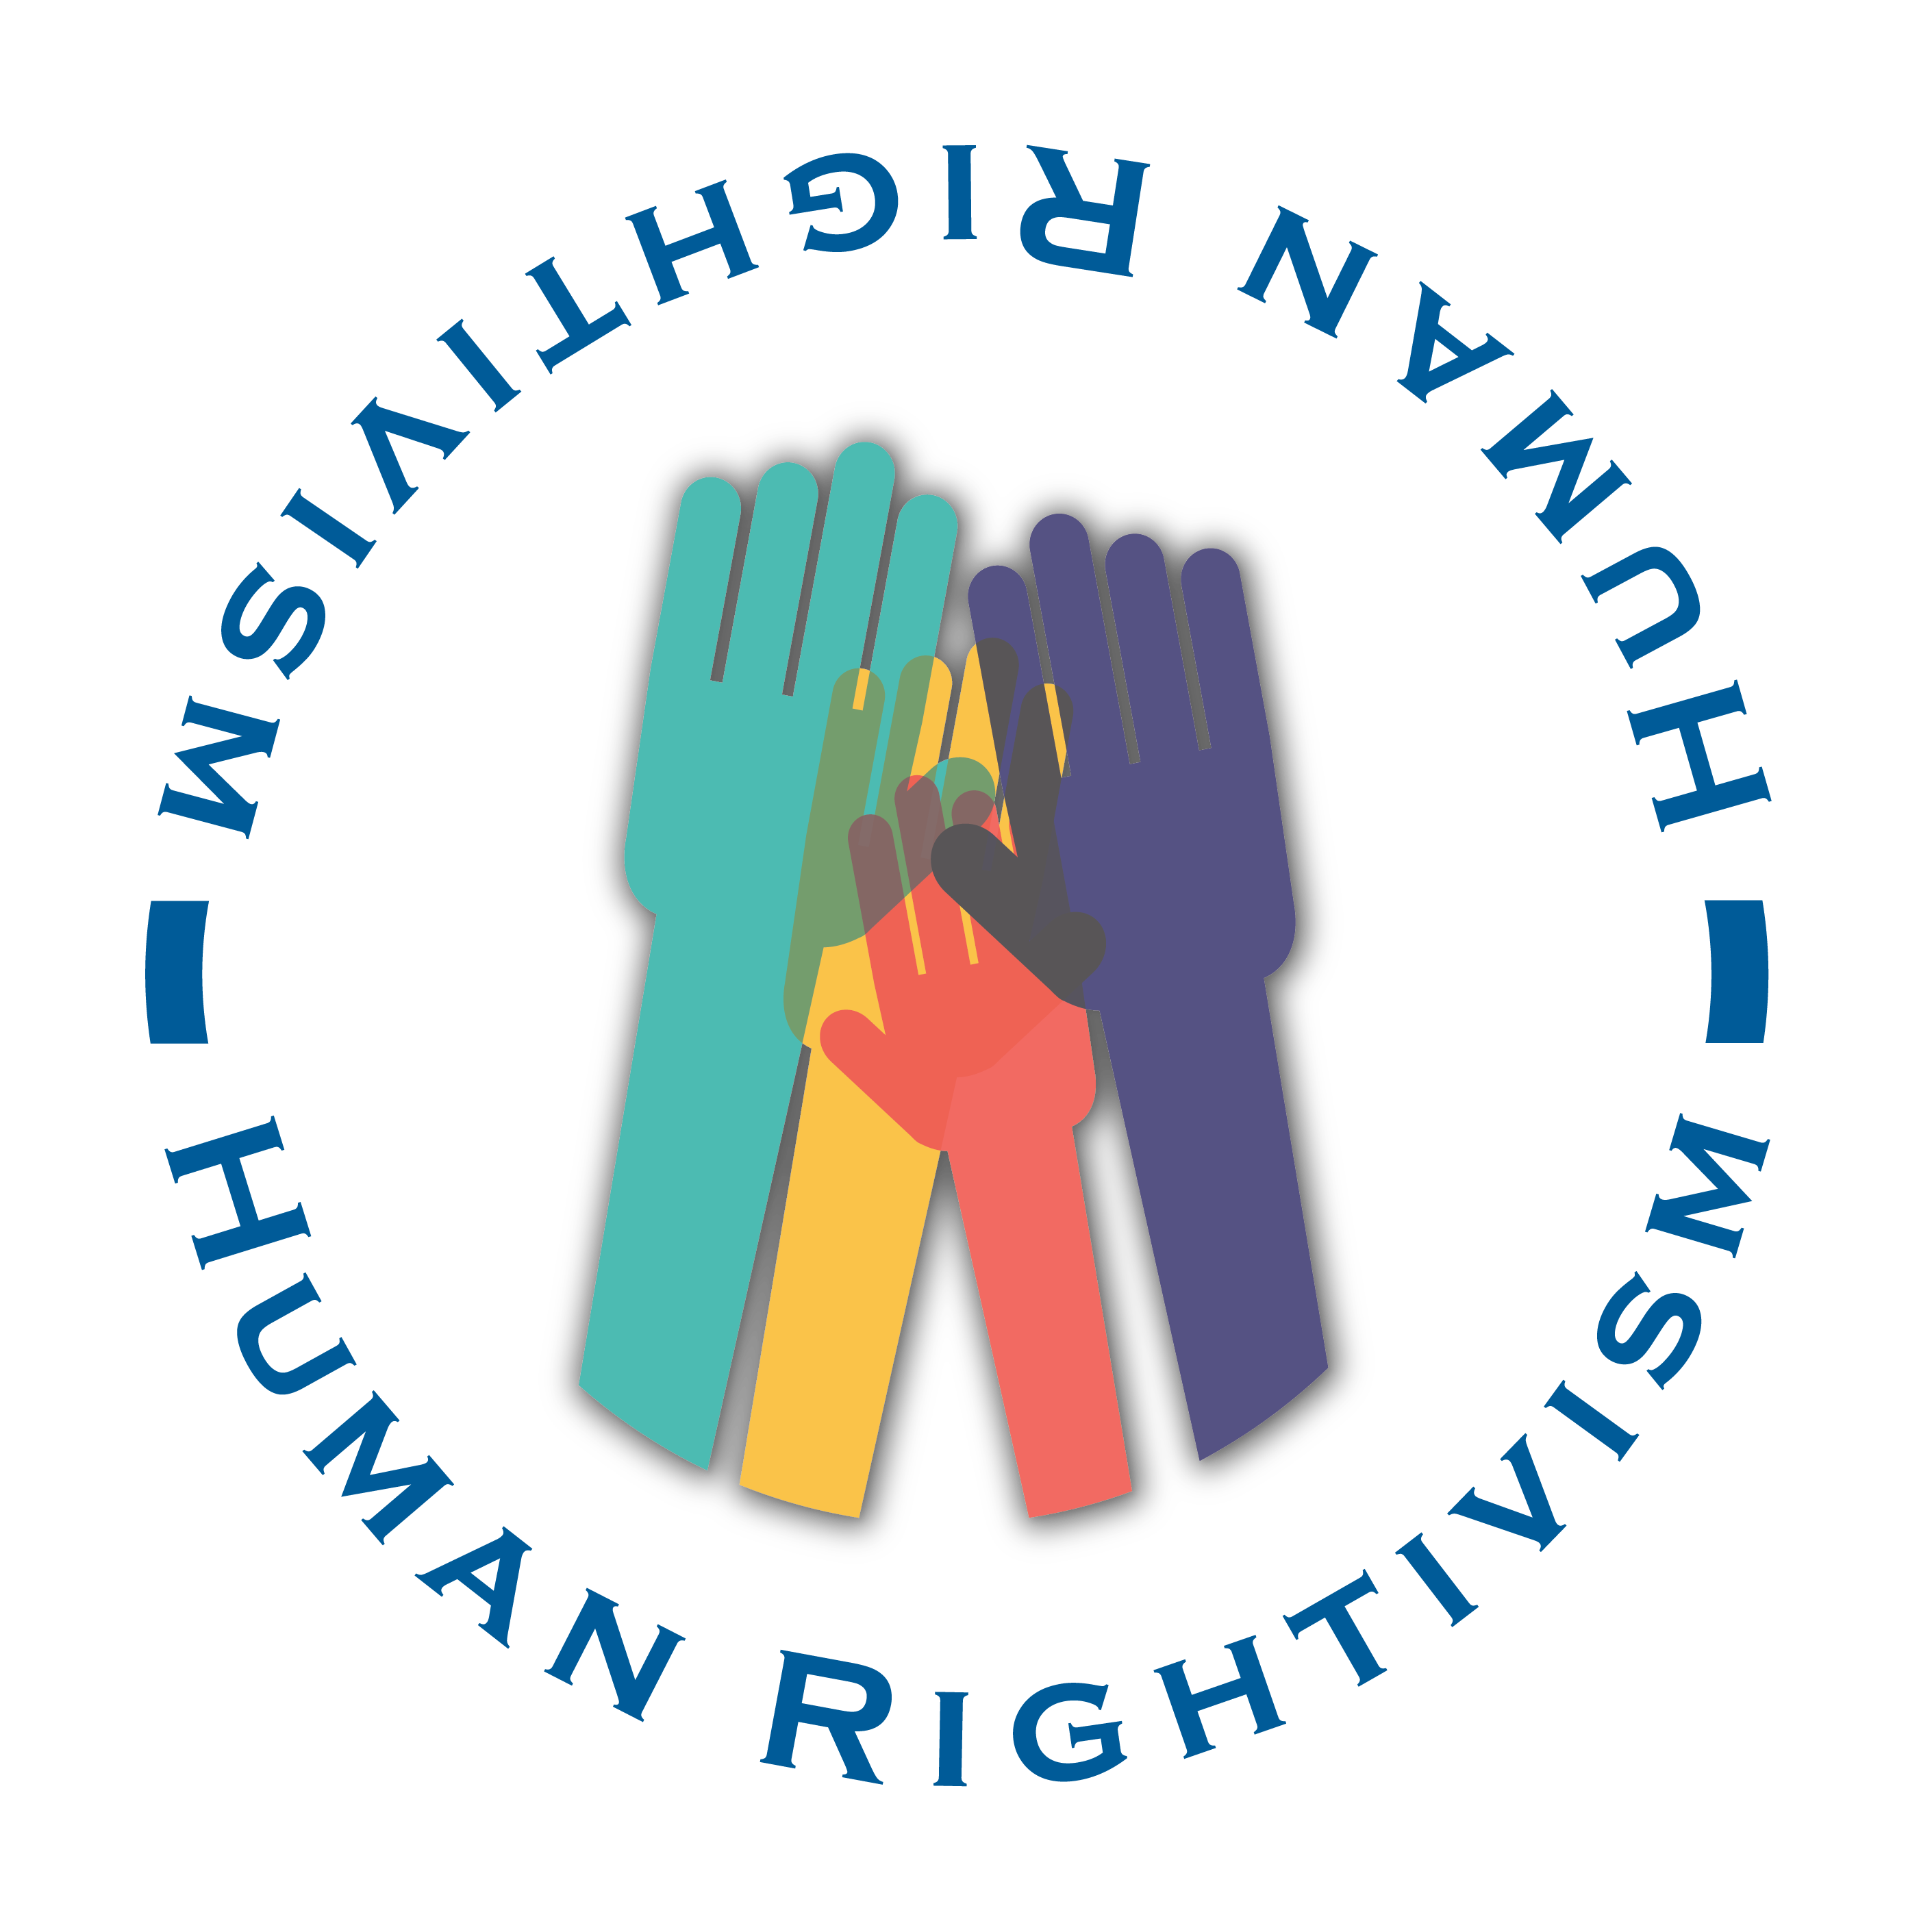 HumanRightivism Project